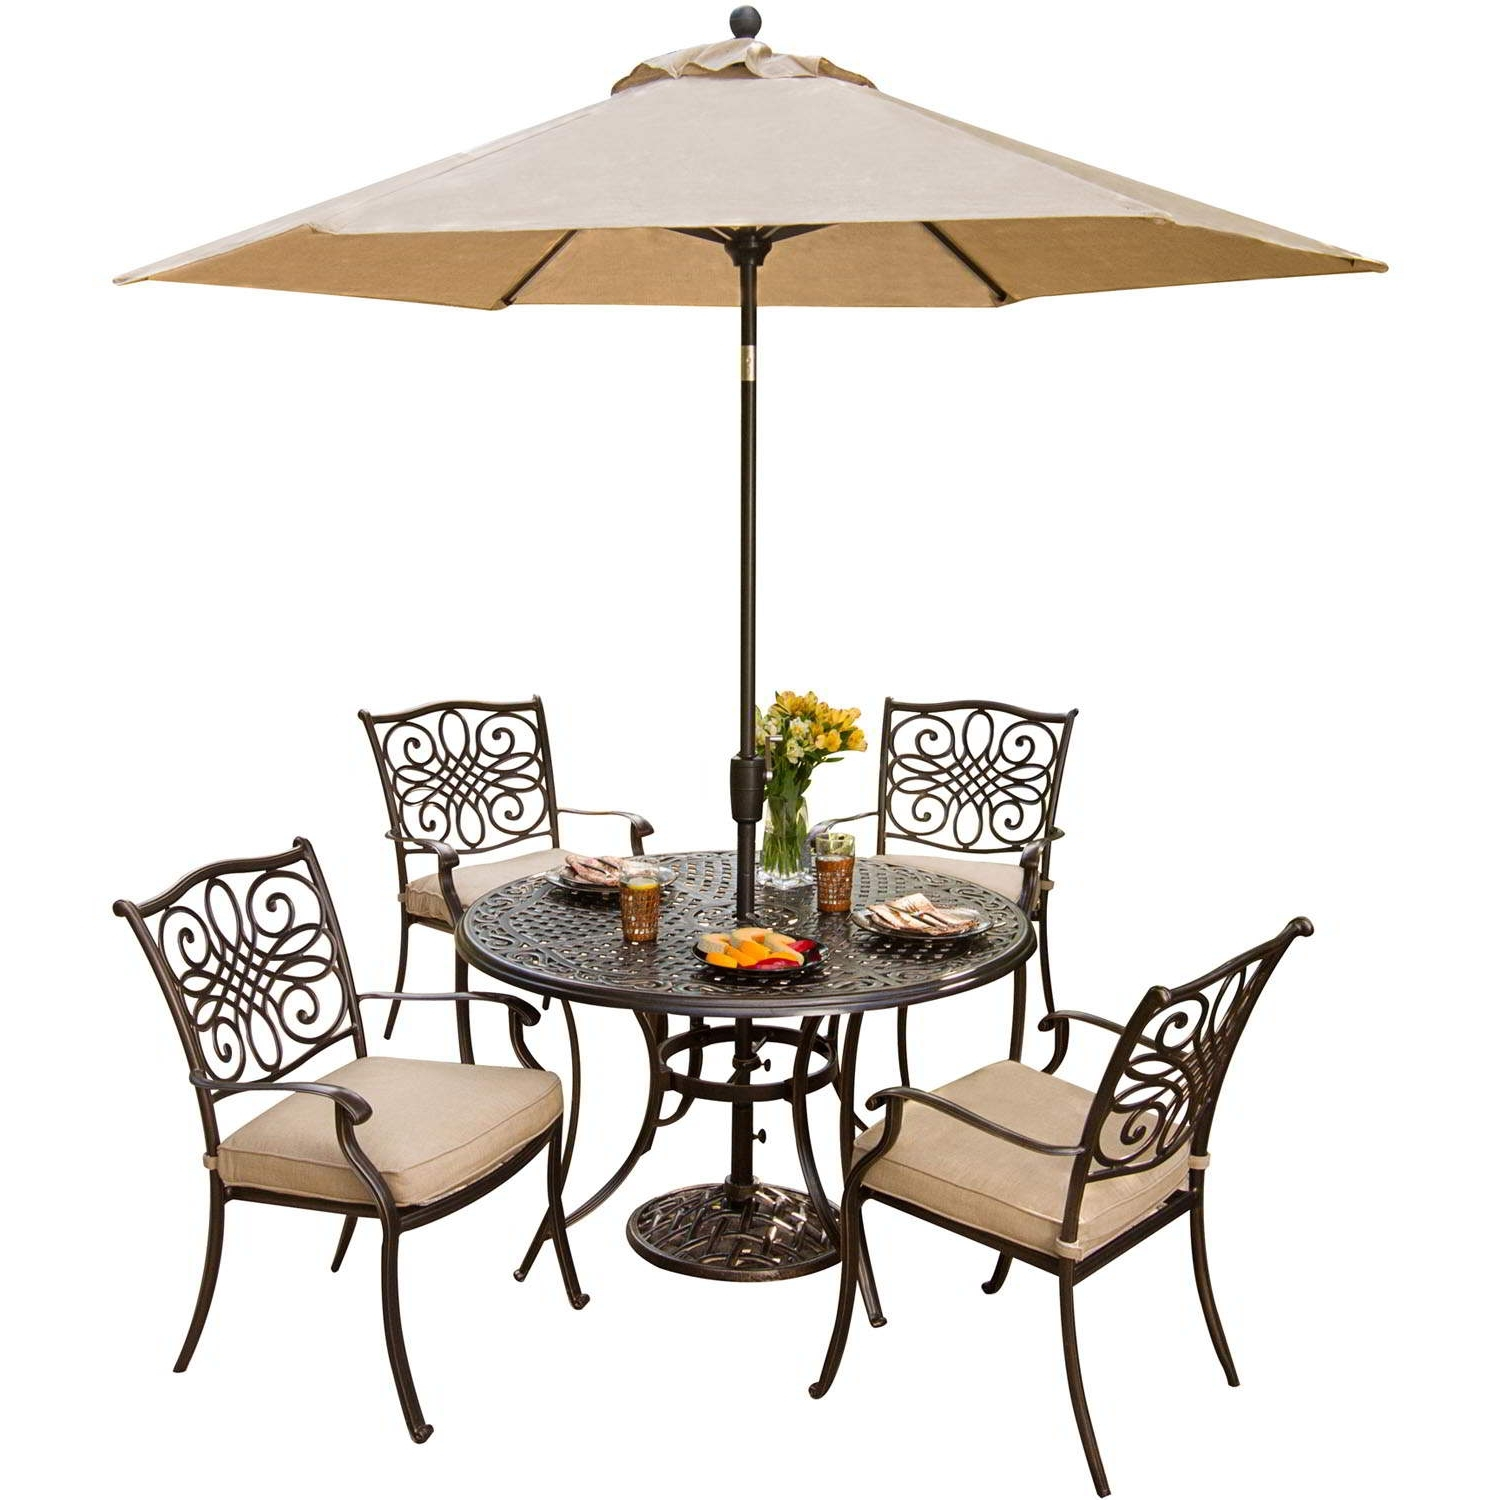 Most Up To Date Traditions 5 Piece Dining Set With Umbrella – Traditions5pc Su Pertaining To Patio Dining Sets With Umbrellas (View 7 of 20)